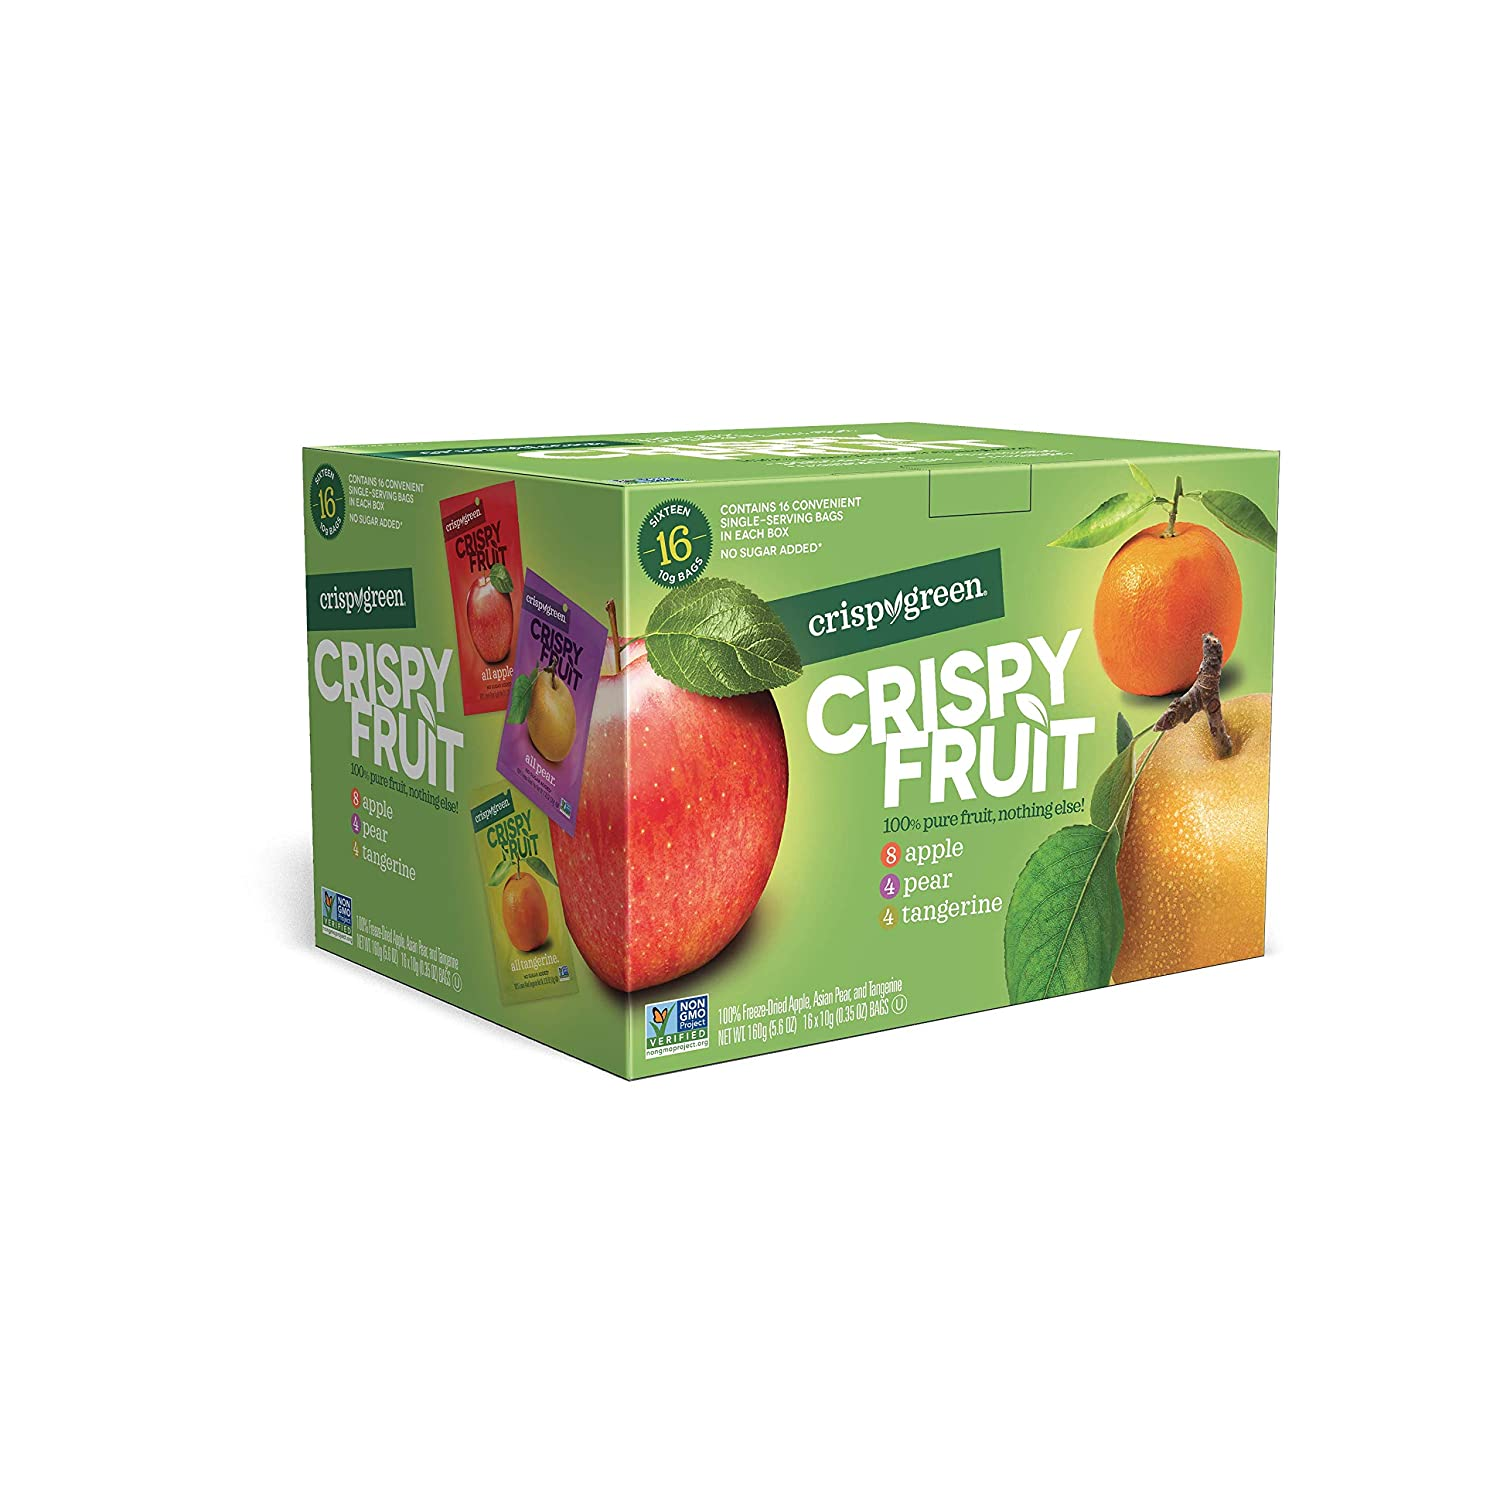 Crispy Green Freeze-Dried Fruit, Single-Serve, Variety Pack, 0.35 Ounce (Pack of 16)